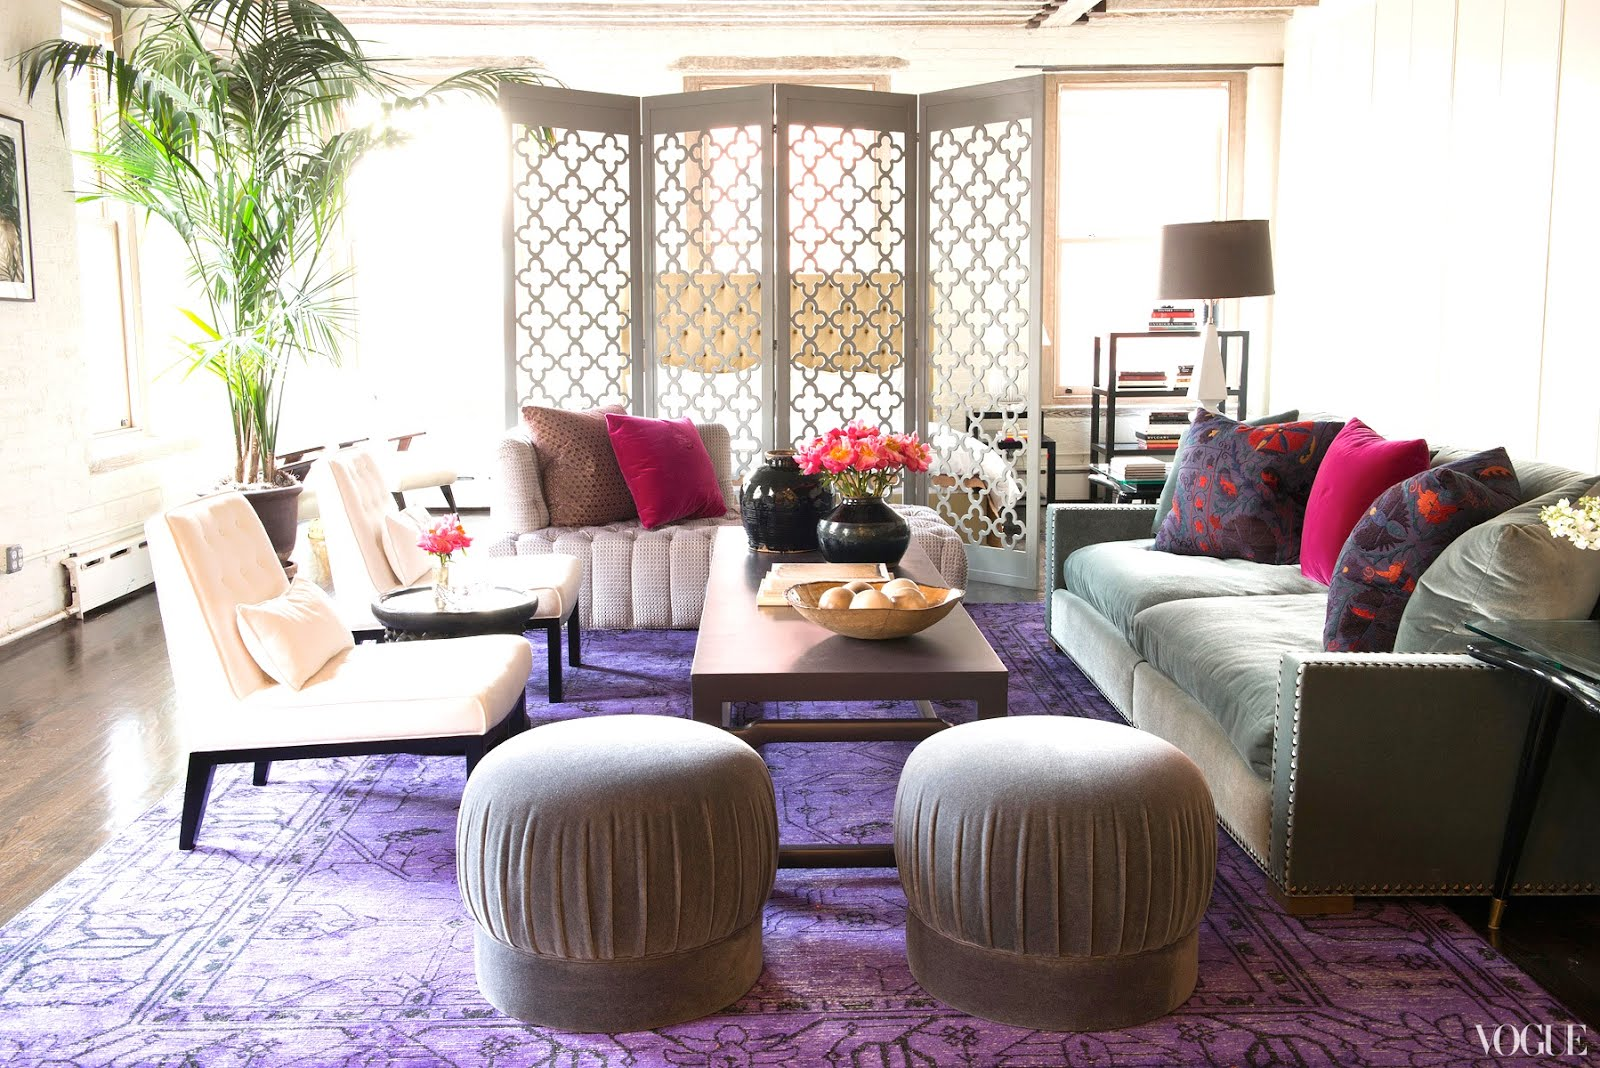 Living Room In Zani Gugelmannu0027s New York City Loft With A Purple Persian  Rug, Grey